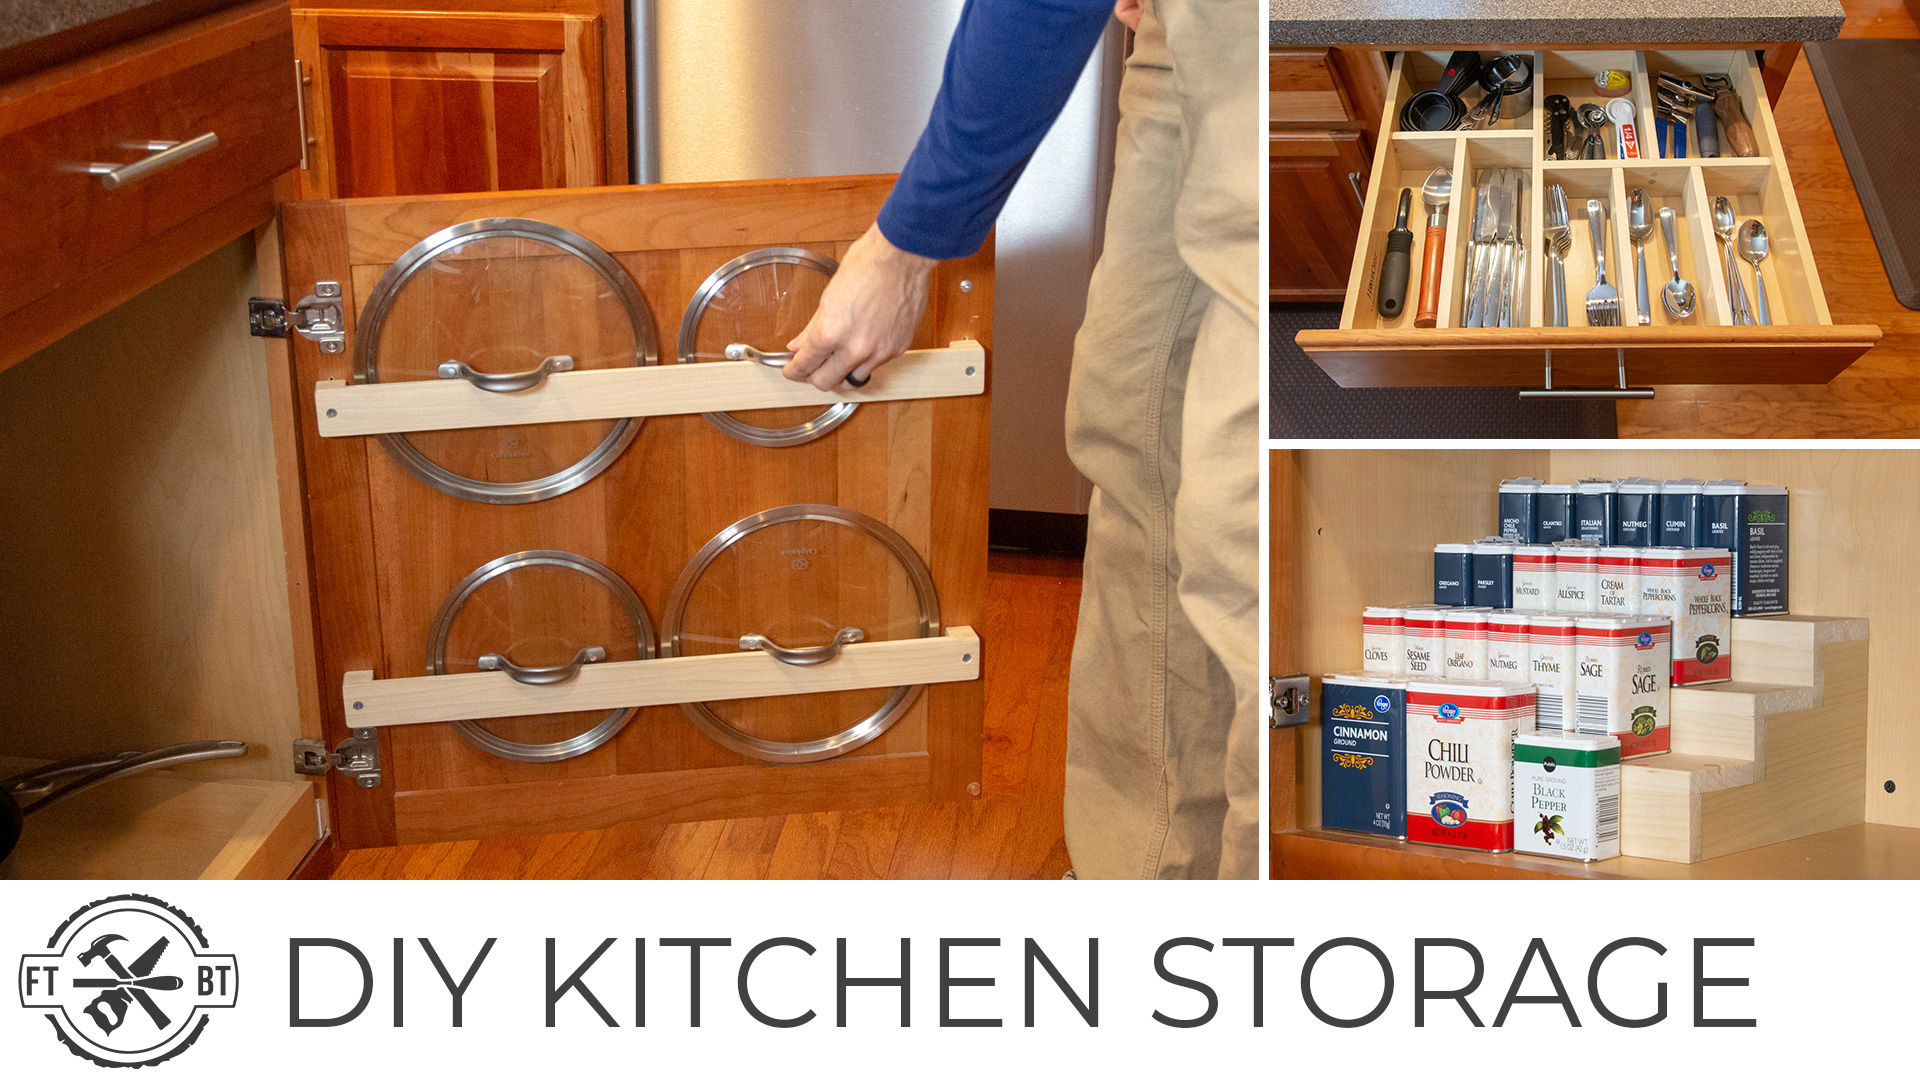 Kitchen Organizer Storage 3 Easy Diy Kitchen Organization Projects Project Recap